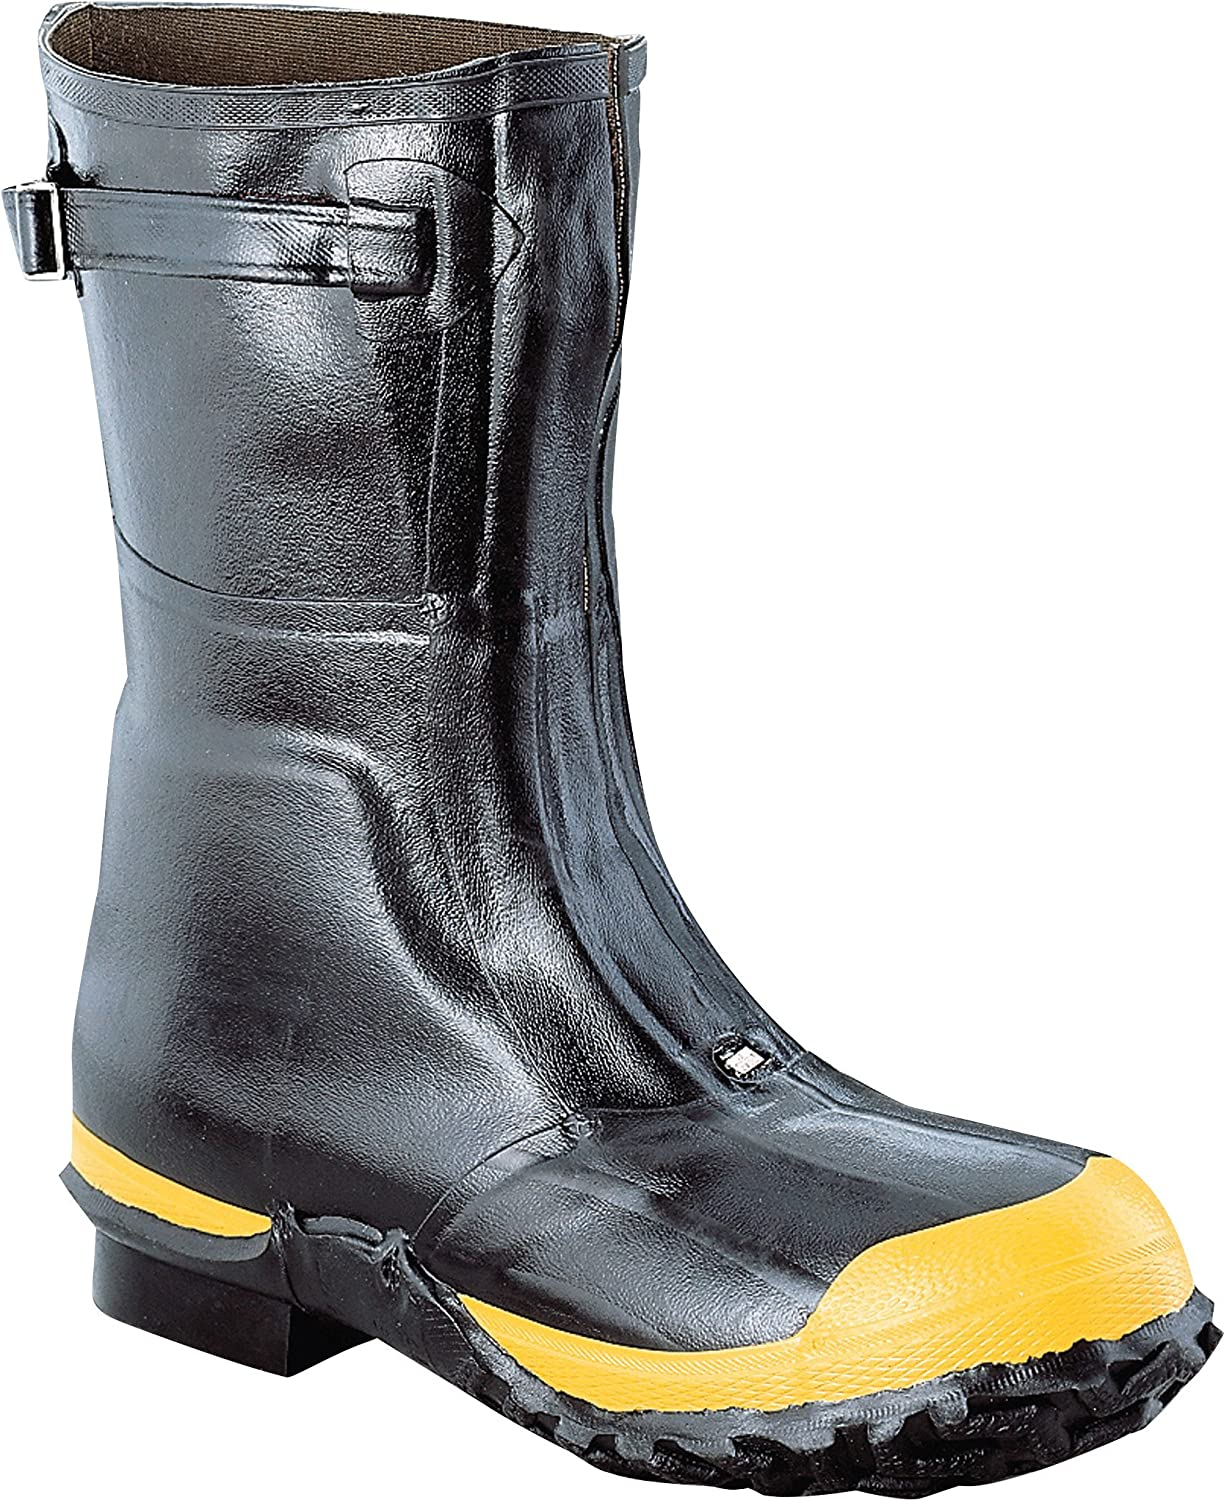 "B00B5SM400 Ranger Lineman's Zip Pac 12"" Heavy-Duty Insulated Rubber Men's Work Boots with Steel Toe & Steel Midsole, Black & Yellow (21622) 91epiL1EGAL.SL1500_"